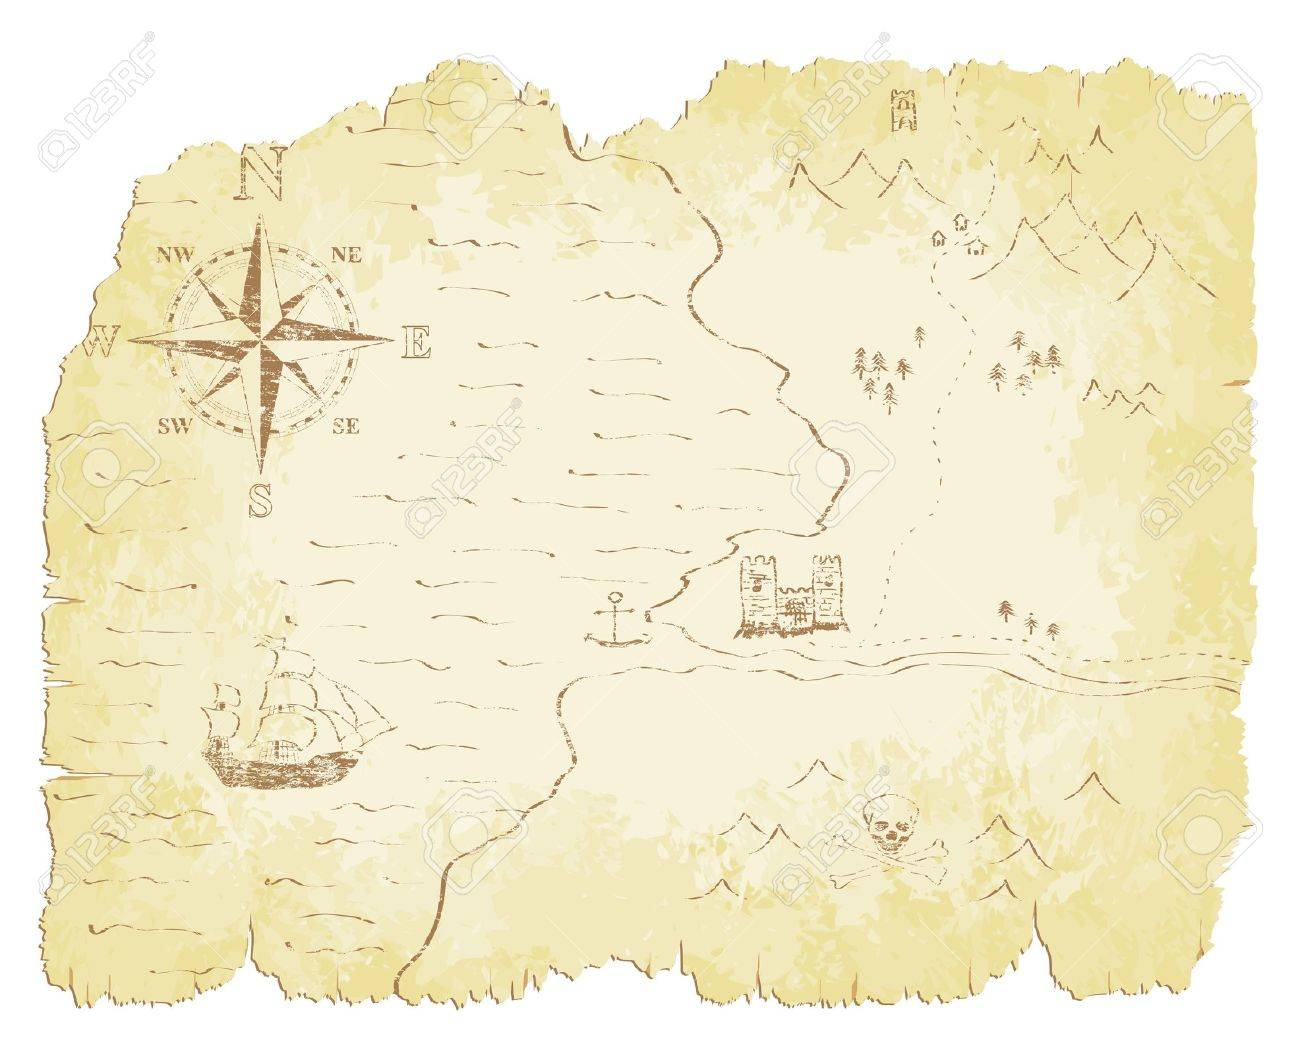 Battered and faded old map illustration. - 16704105